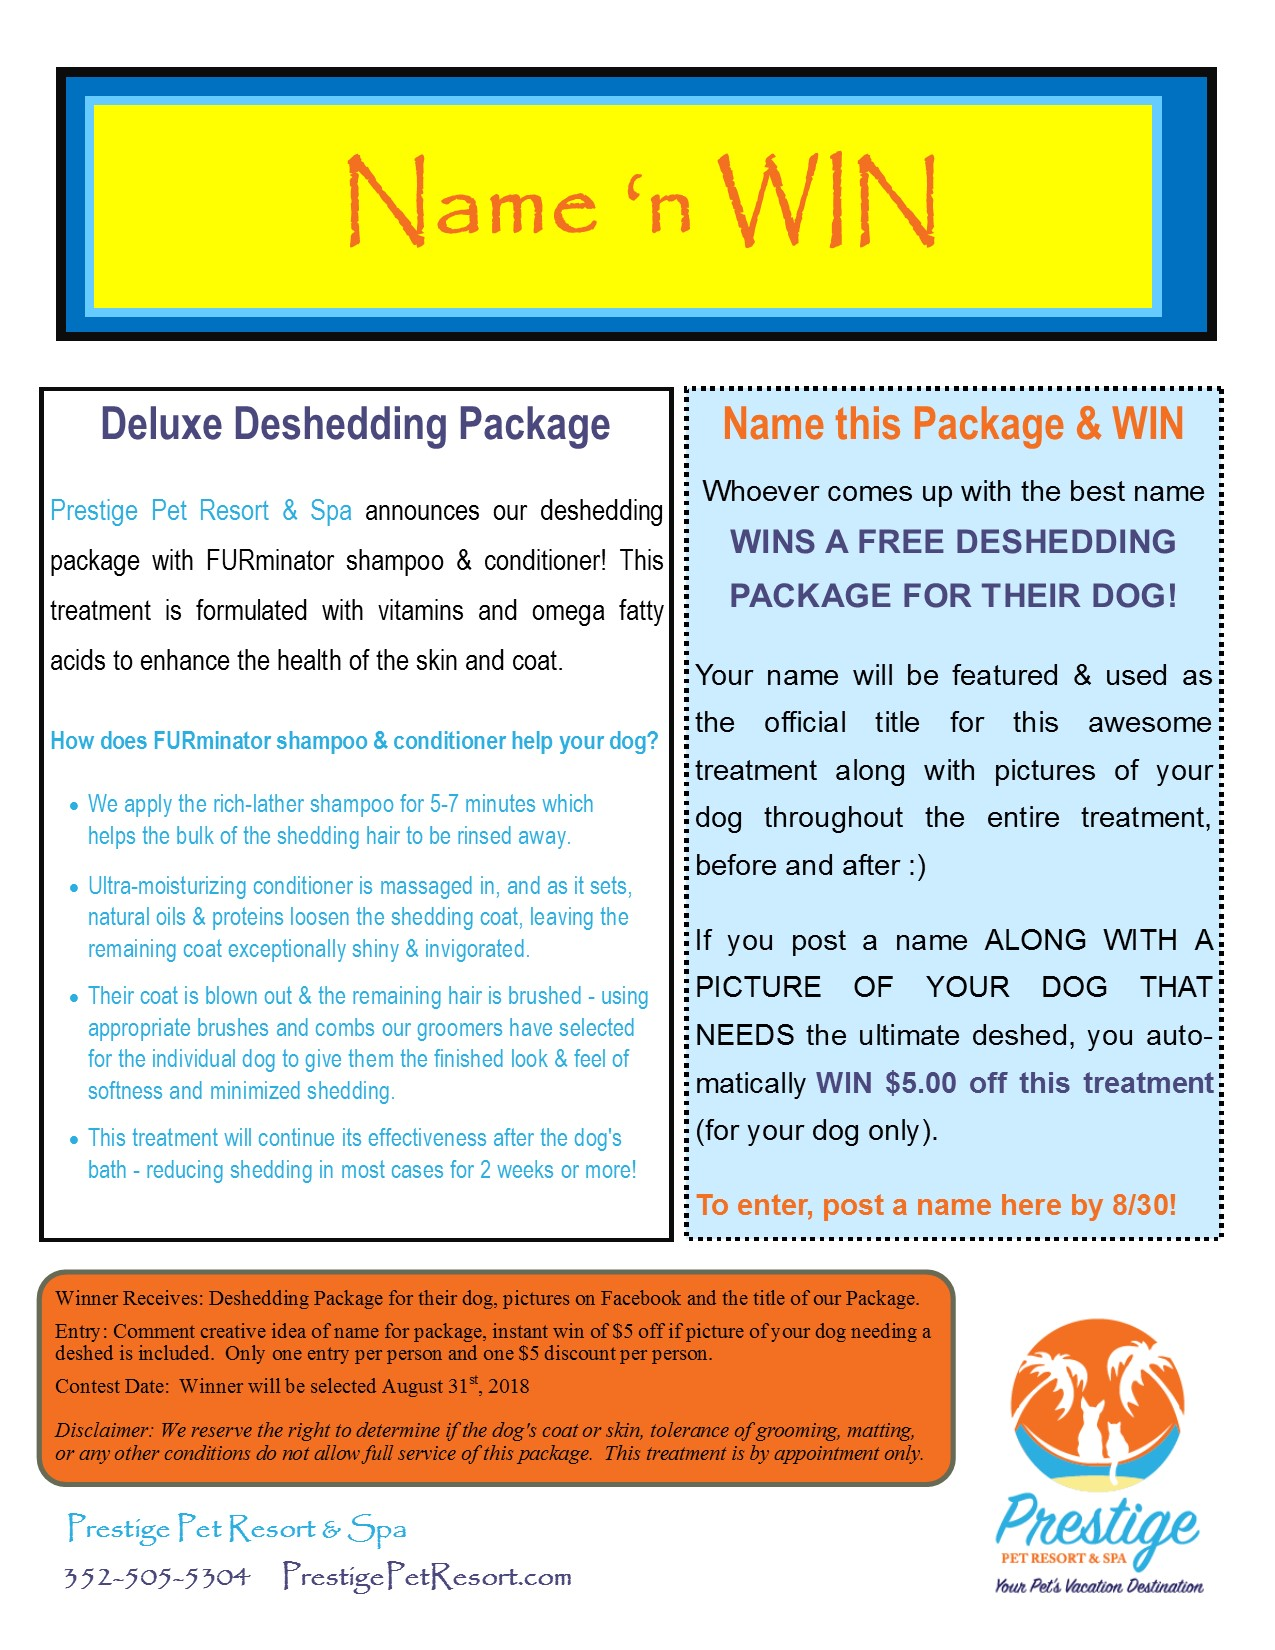 Name 'N Win Contest for Deshedding Package